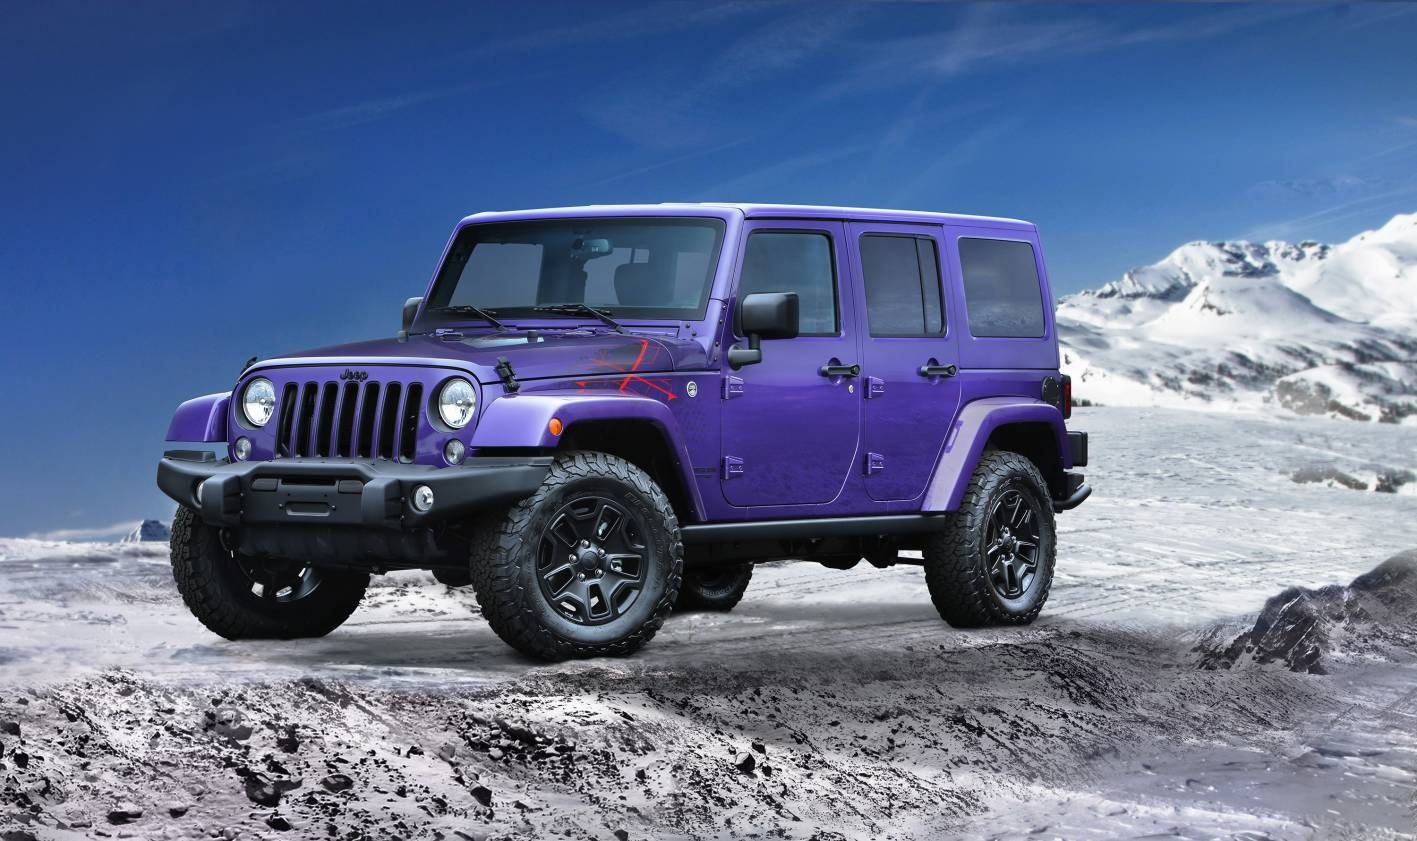 2018 Jeep Wrangler JL: What We Know